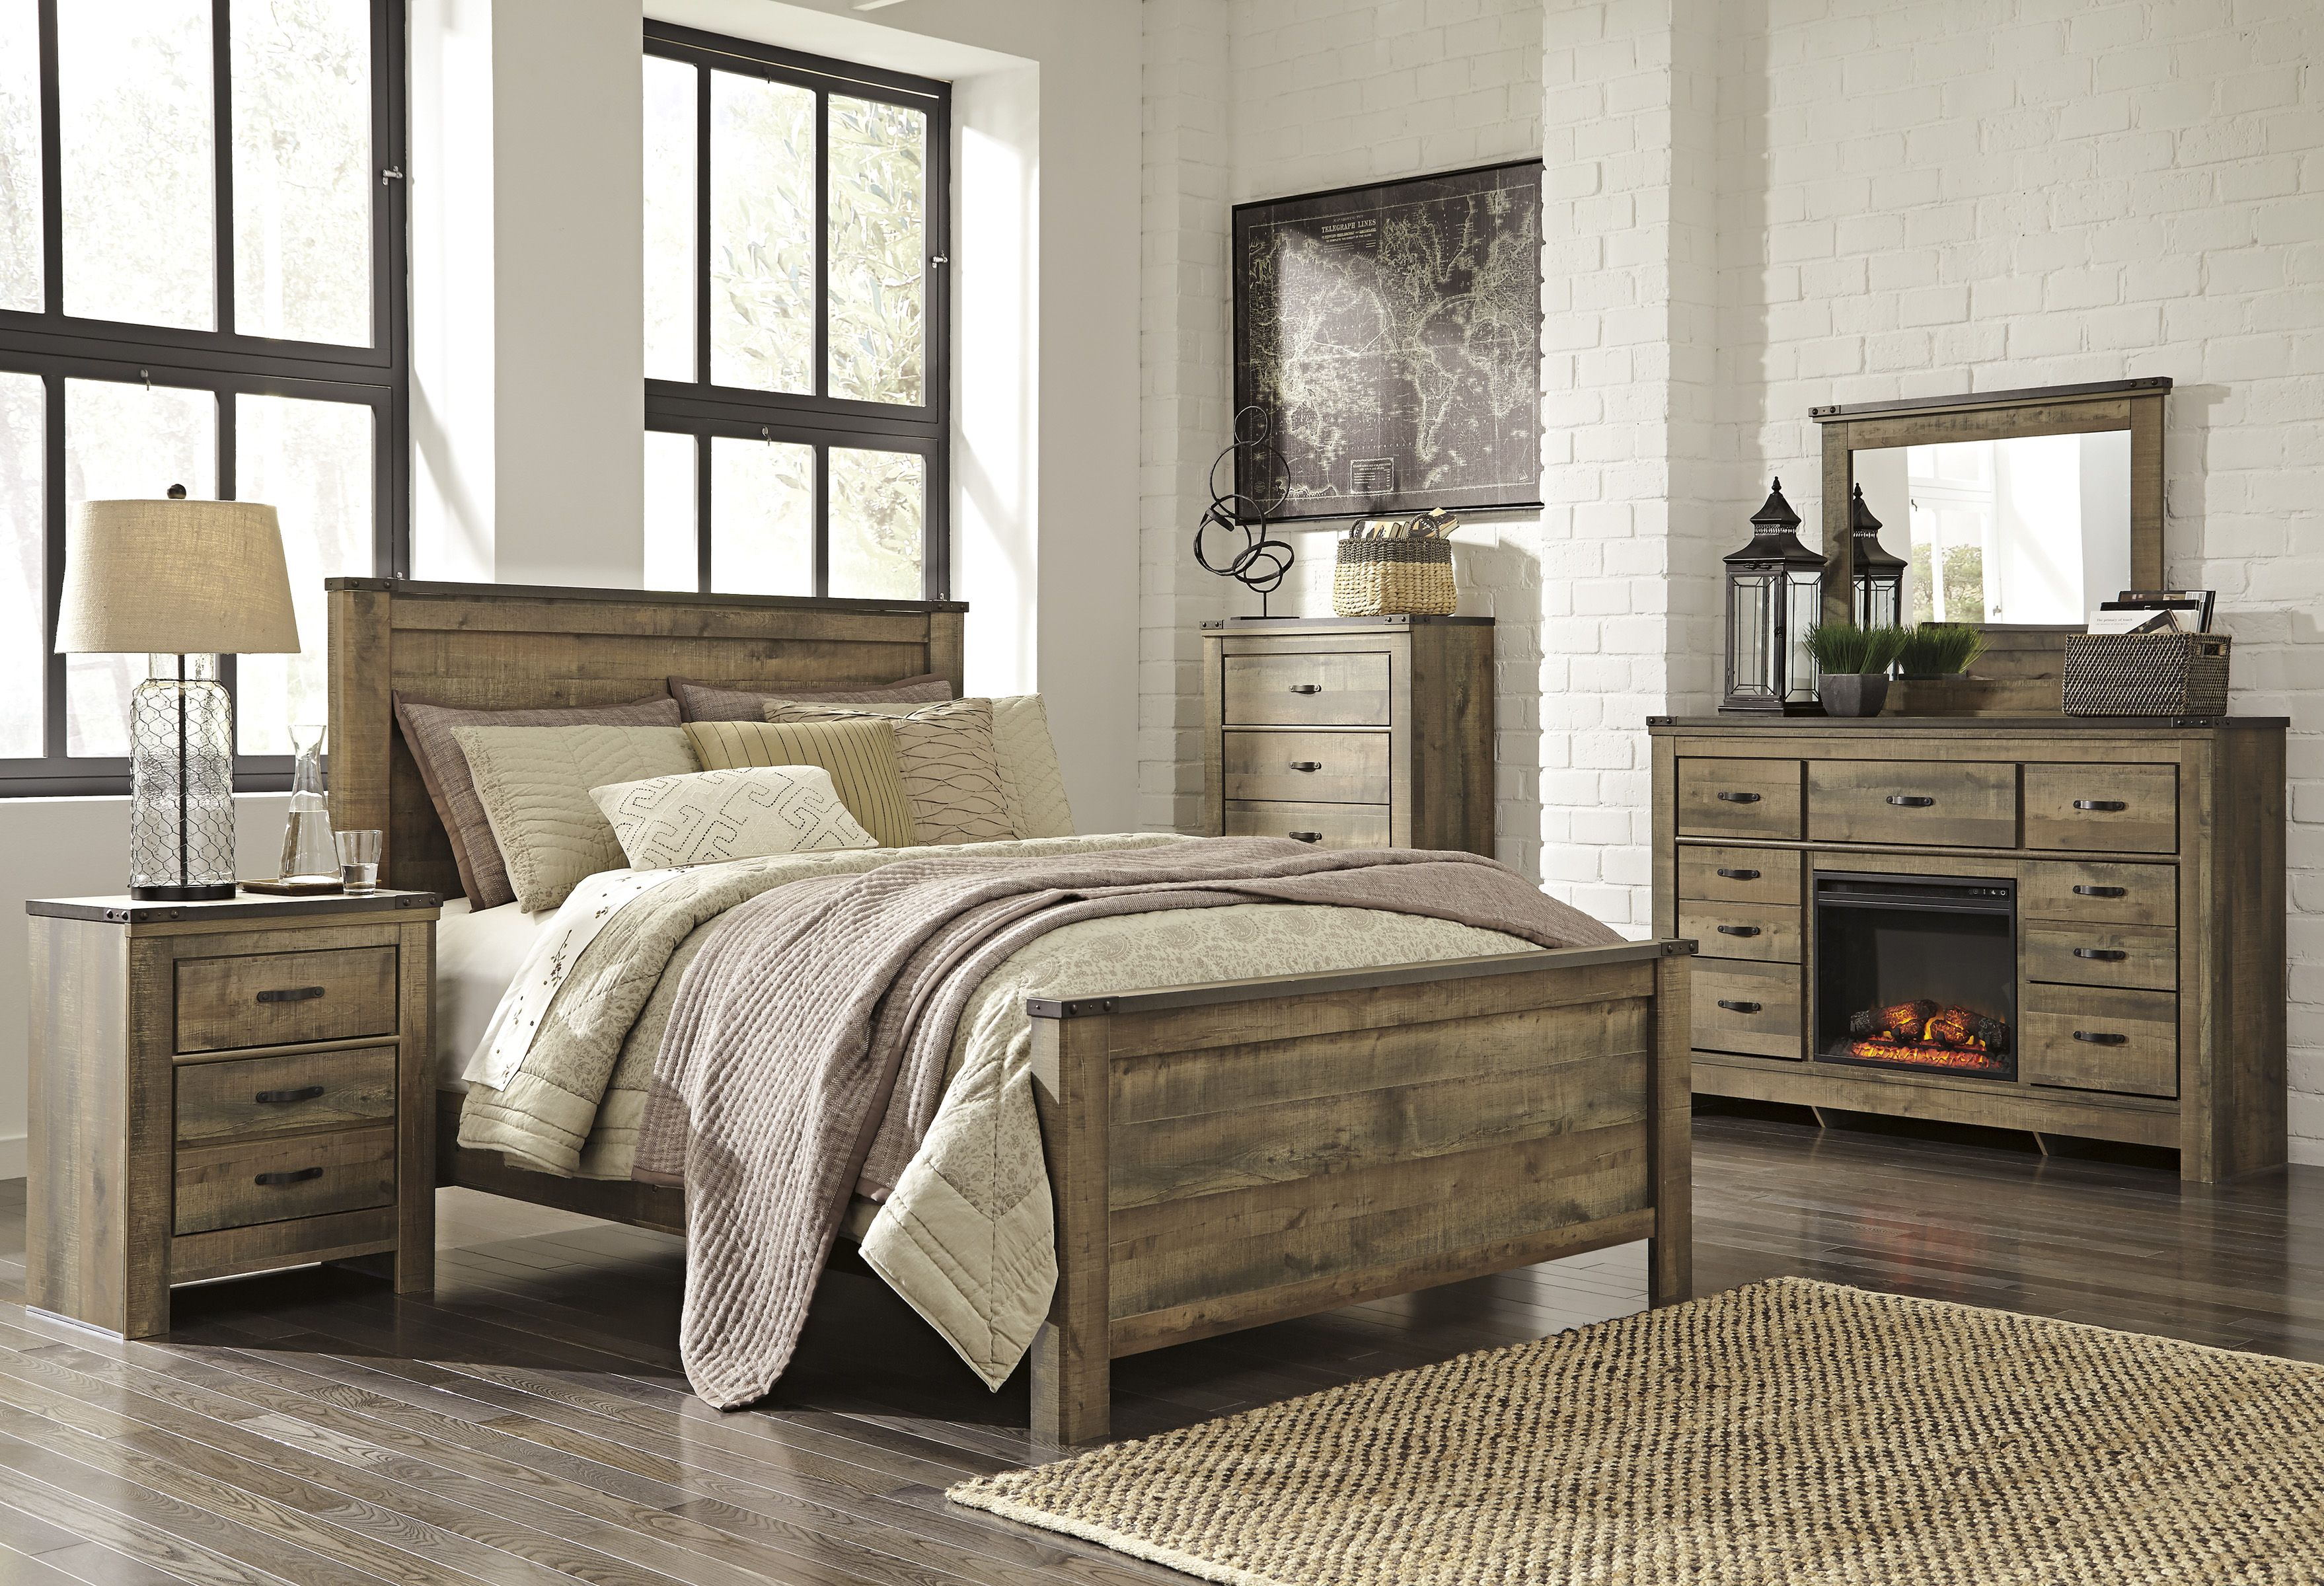 Ashley B446 32 Trinell Dresser With Fireplace Option